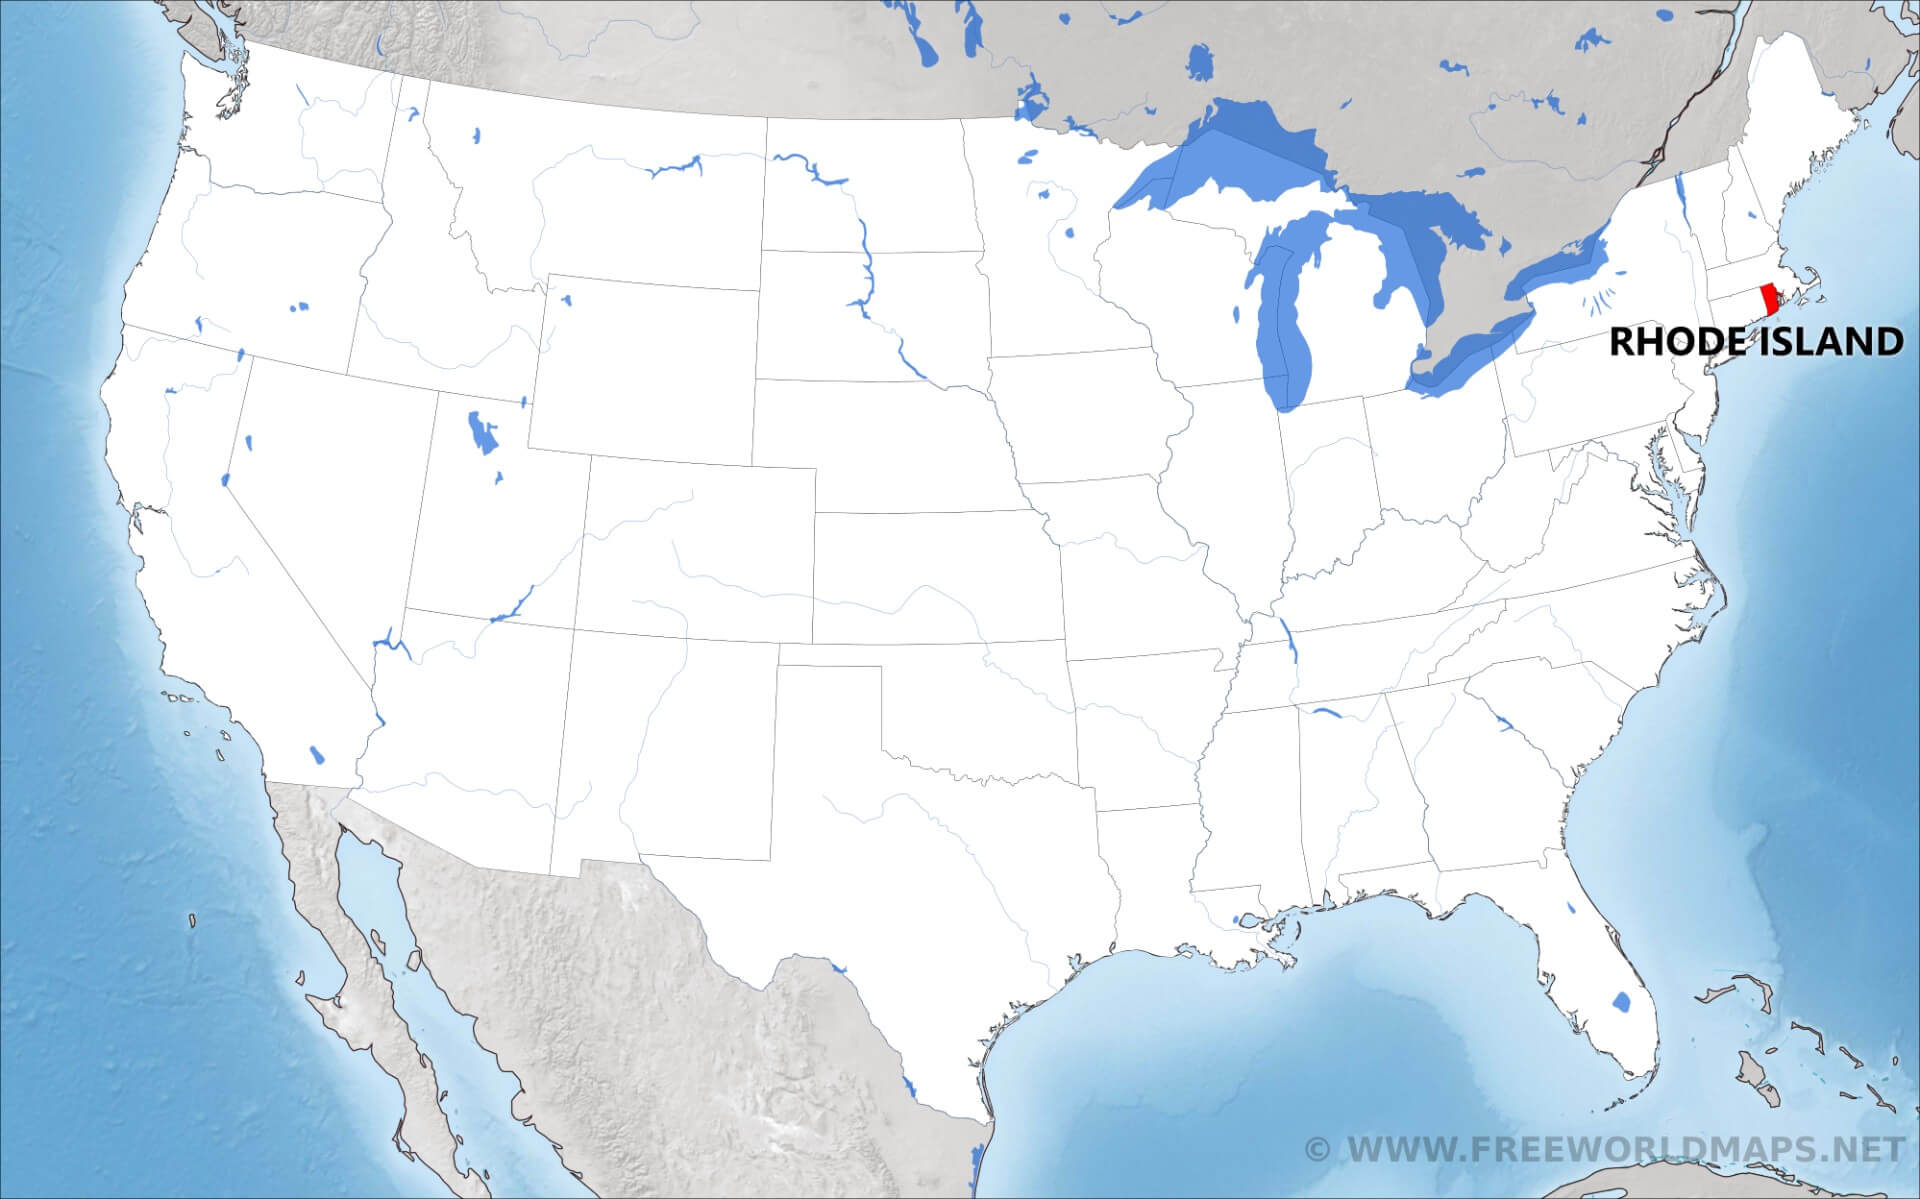 where-is-rhodeisland-hd United States Map By State on map of each state, nigeria map by state, sudan map by state, most famous brand from each state, illinois by state, united states 2022 fifa world cup bid, map of income taxes by state, montana map by state, mapsof the united state, united states maps usa, france map by state, united states newspapers by state, united states cultural symbols, michigan map by state, state flags by state, road atlas by state, agenda 21 map by state, united states of america by state, america map by state,